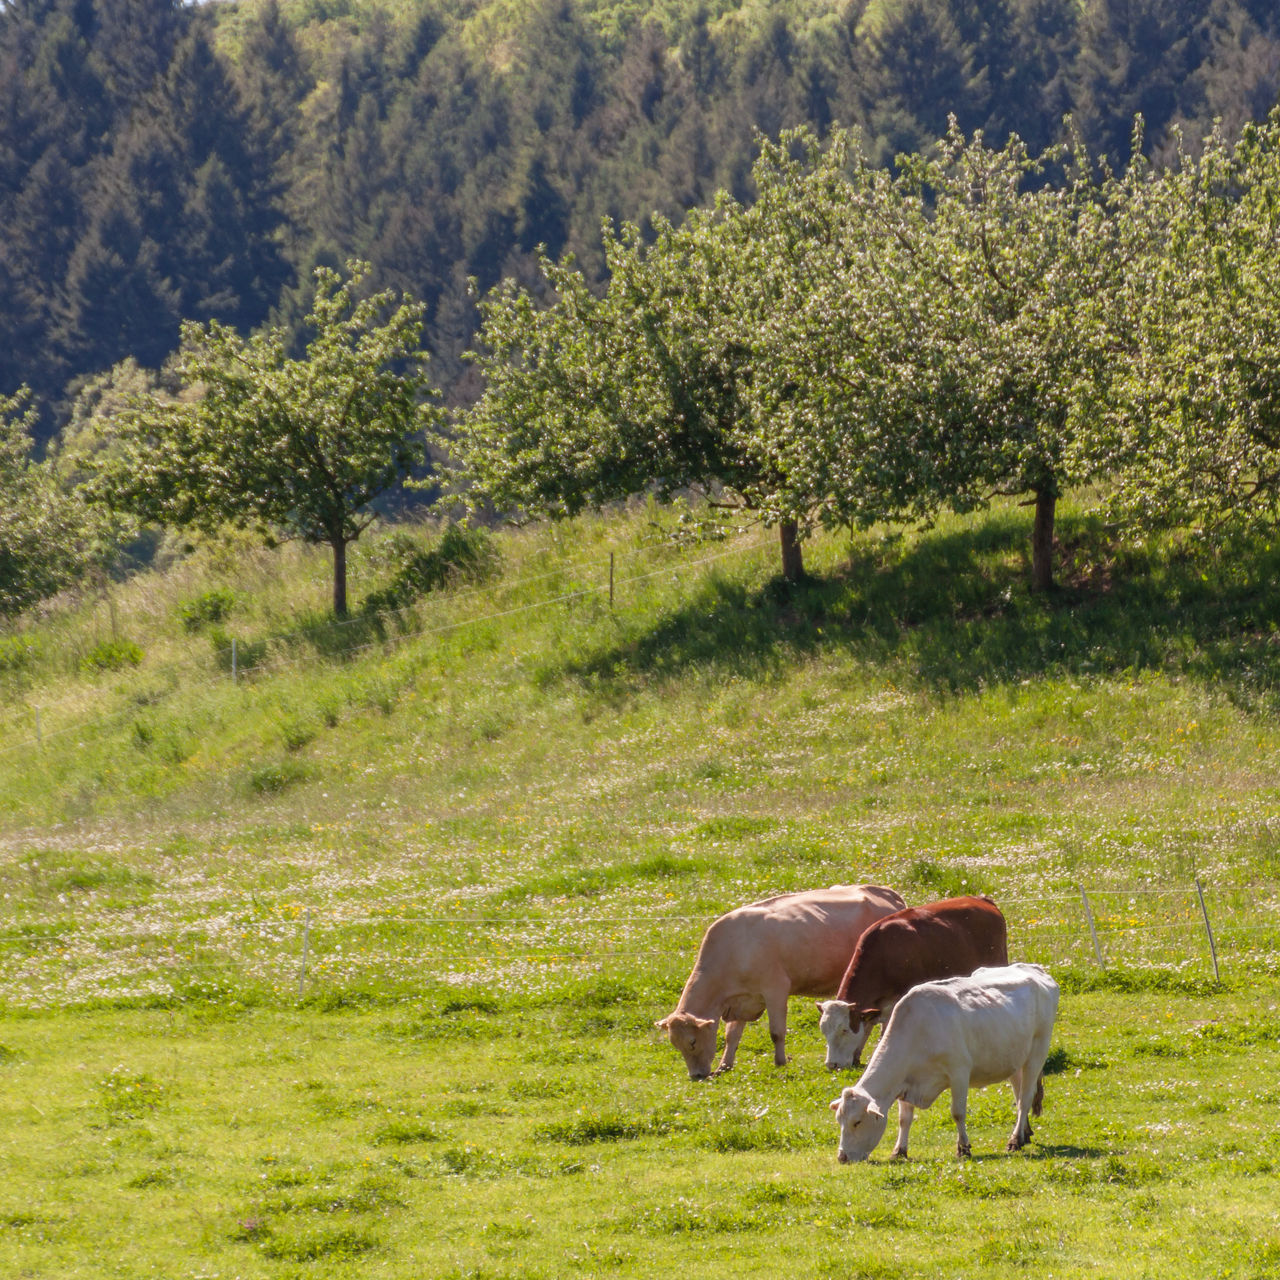 Animal Themes Beauty In Nature Cows Cows In A Field Day Domestic Animals Field Grass Grazing Grazing Landscape Livestock Mammal Meadow Nature No People Outdoors Rural Scene Springtime Standing Sunlight Tree Trees